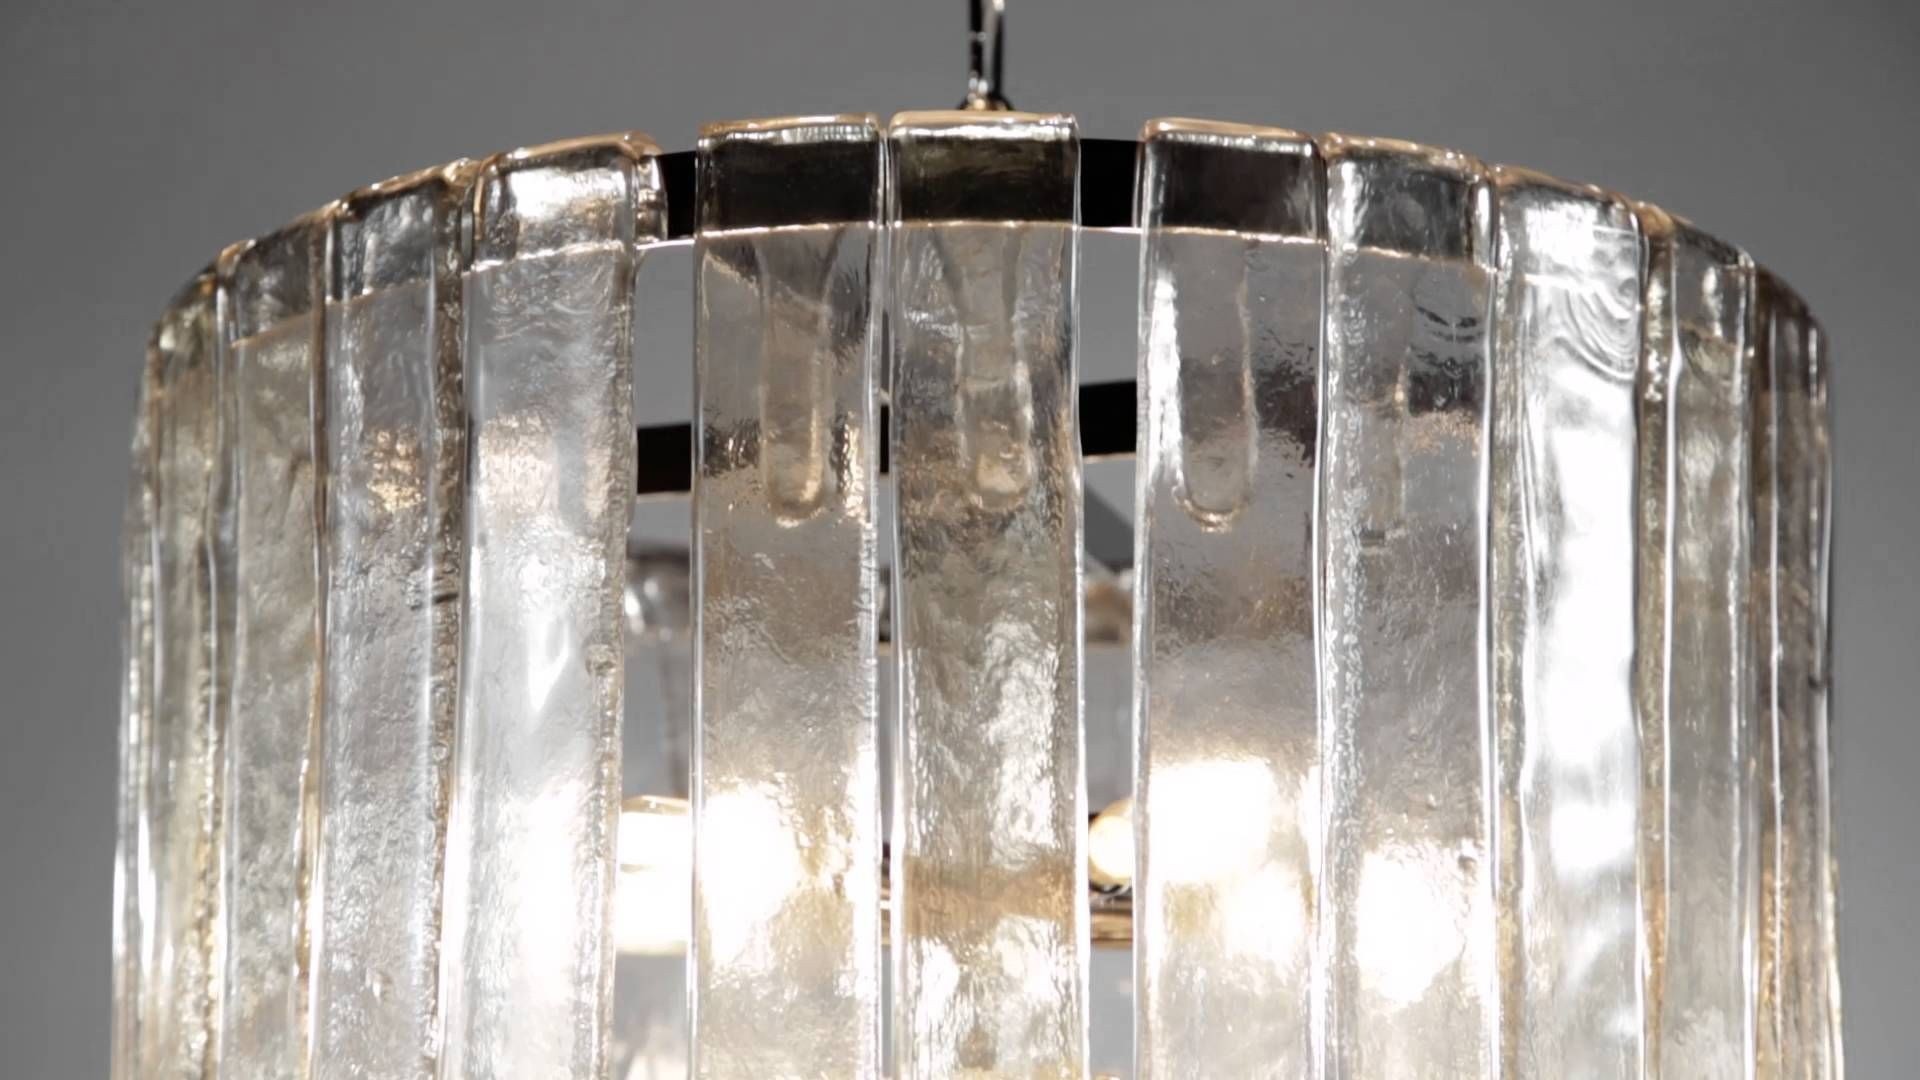 Design gets icy with the fenwater chandelier by hudson valley design gets icy with the fenwater chandelier by hudson valley lighting lighting design arubaitofo Choice Image